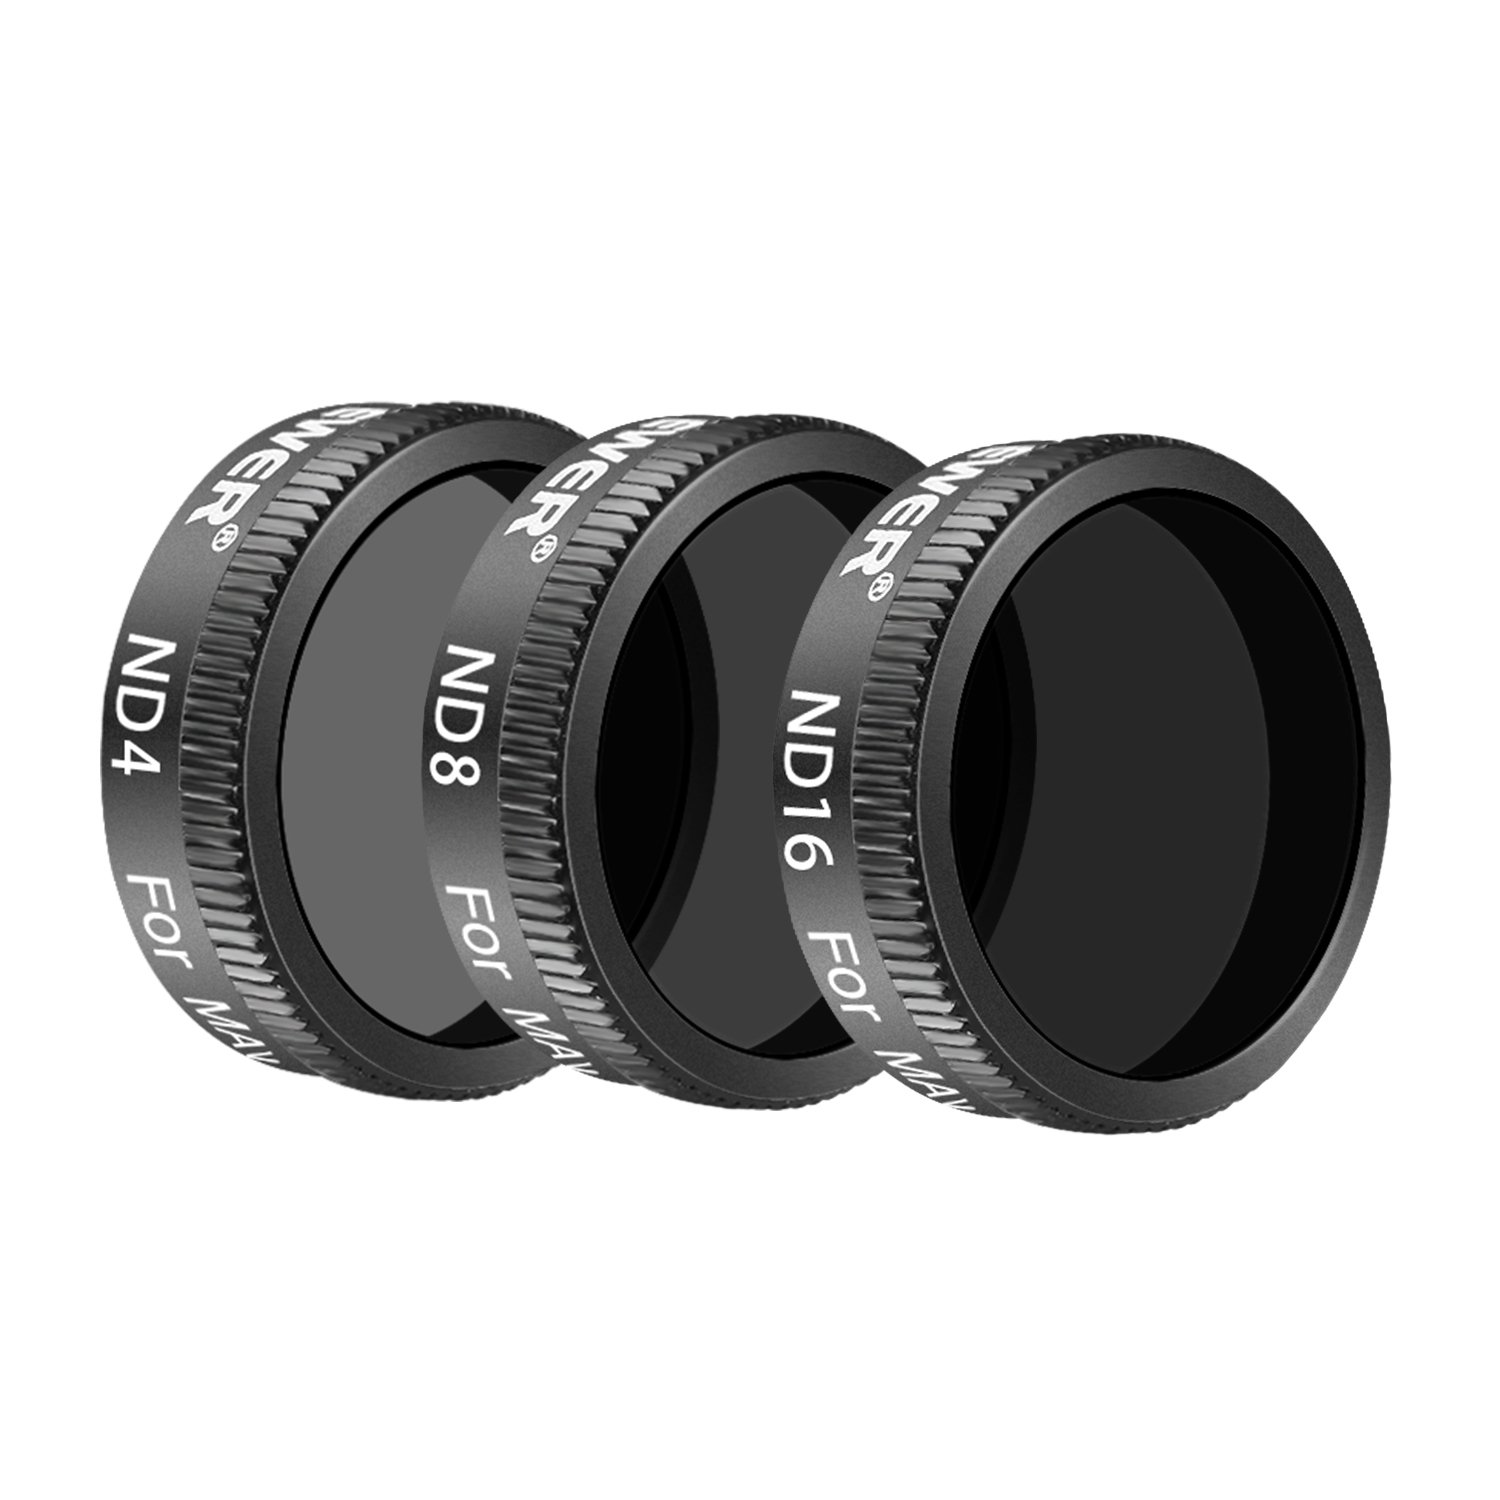 Neewer DJI Mavic Air Lens Filter Kit - 3 Pieces Pro Neutral Density Filters ND4, ND8, ND16 Filter, Made of Multi Coated Waterproof Aluminum Alloy Frame Optical Glass (Black) by Neewer